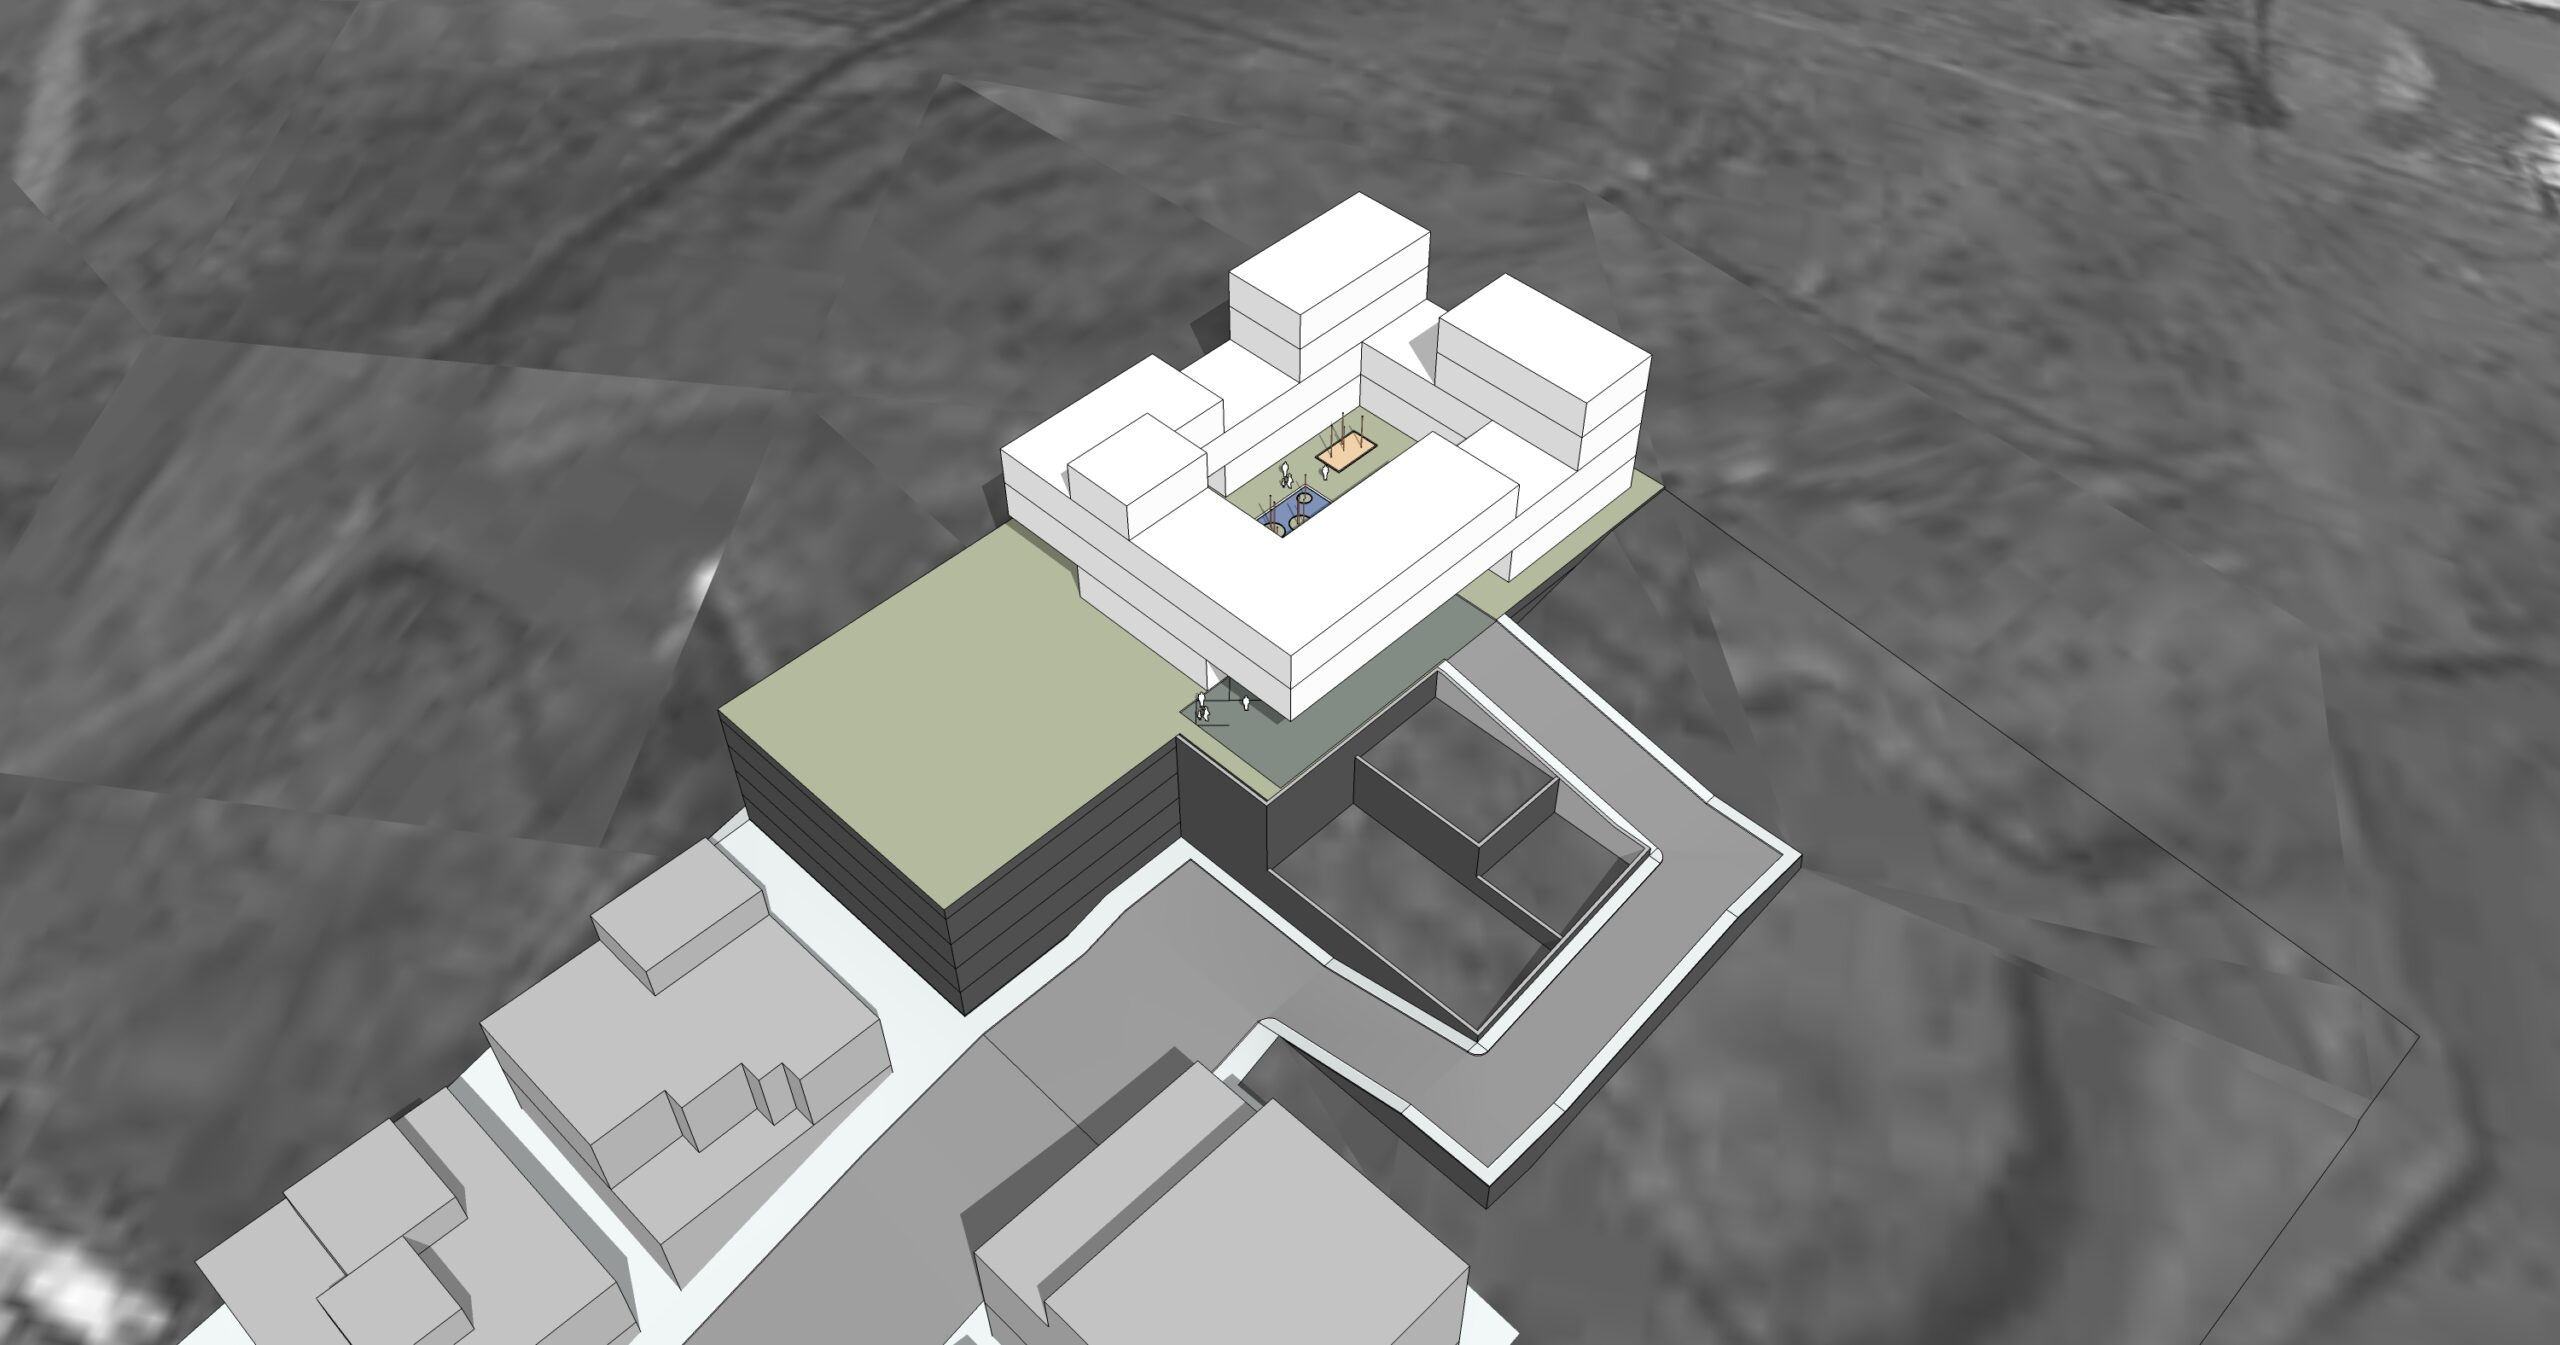 Design of palaces and luxury residential buildings